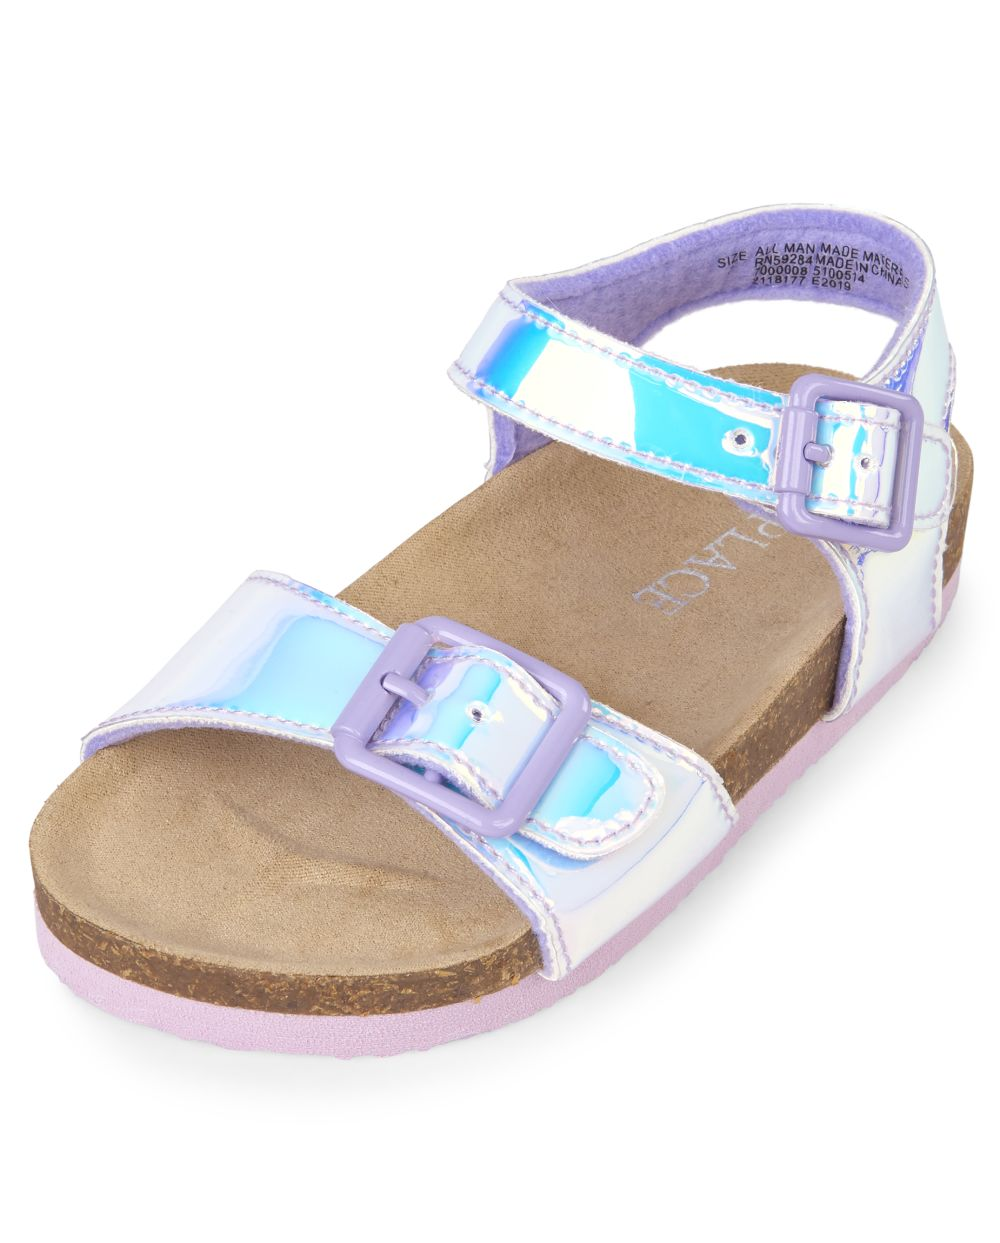 Toddler Girls Holographic Double Strap Sandals